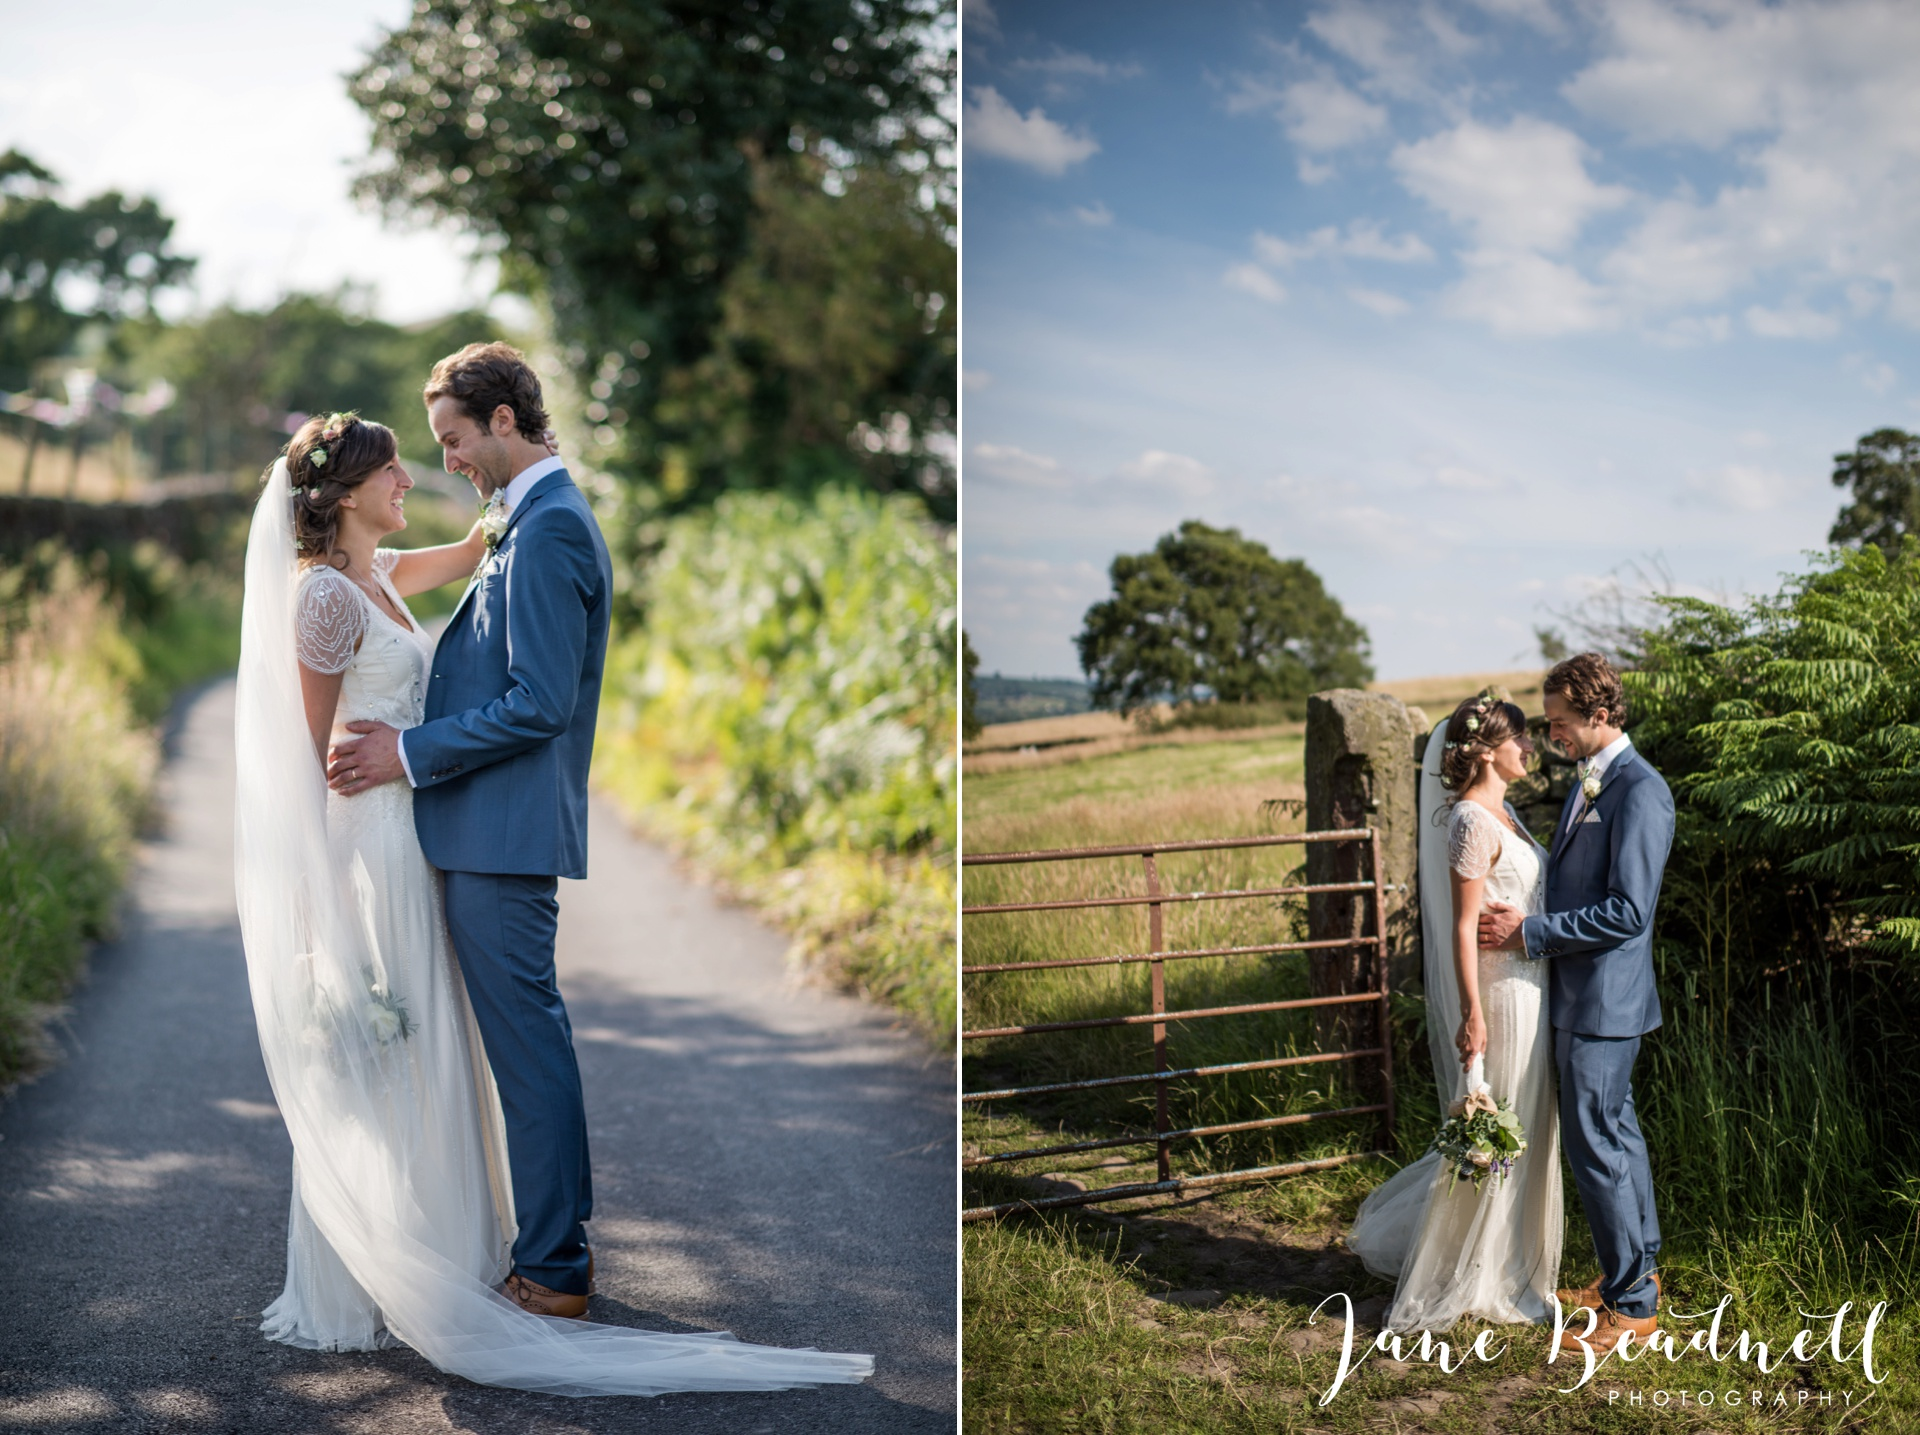 Jane Beadnell fine art wedding photographer Leeds_0079